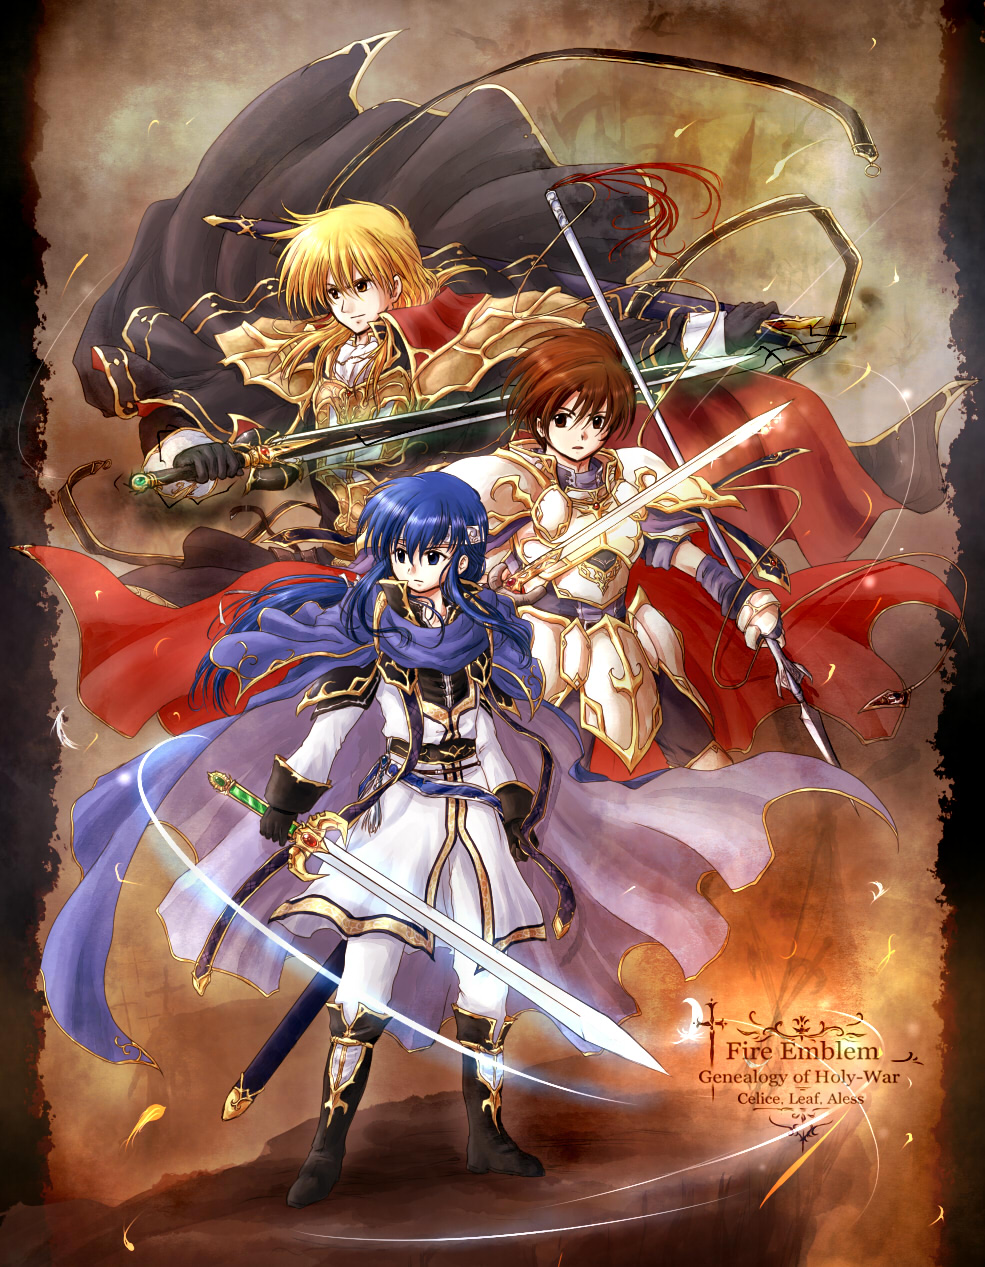 Fire-Emblem-Holy-War